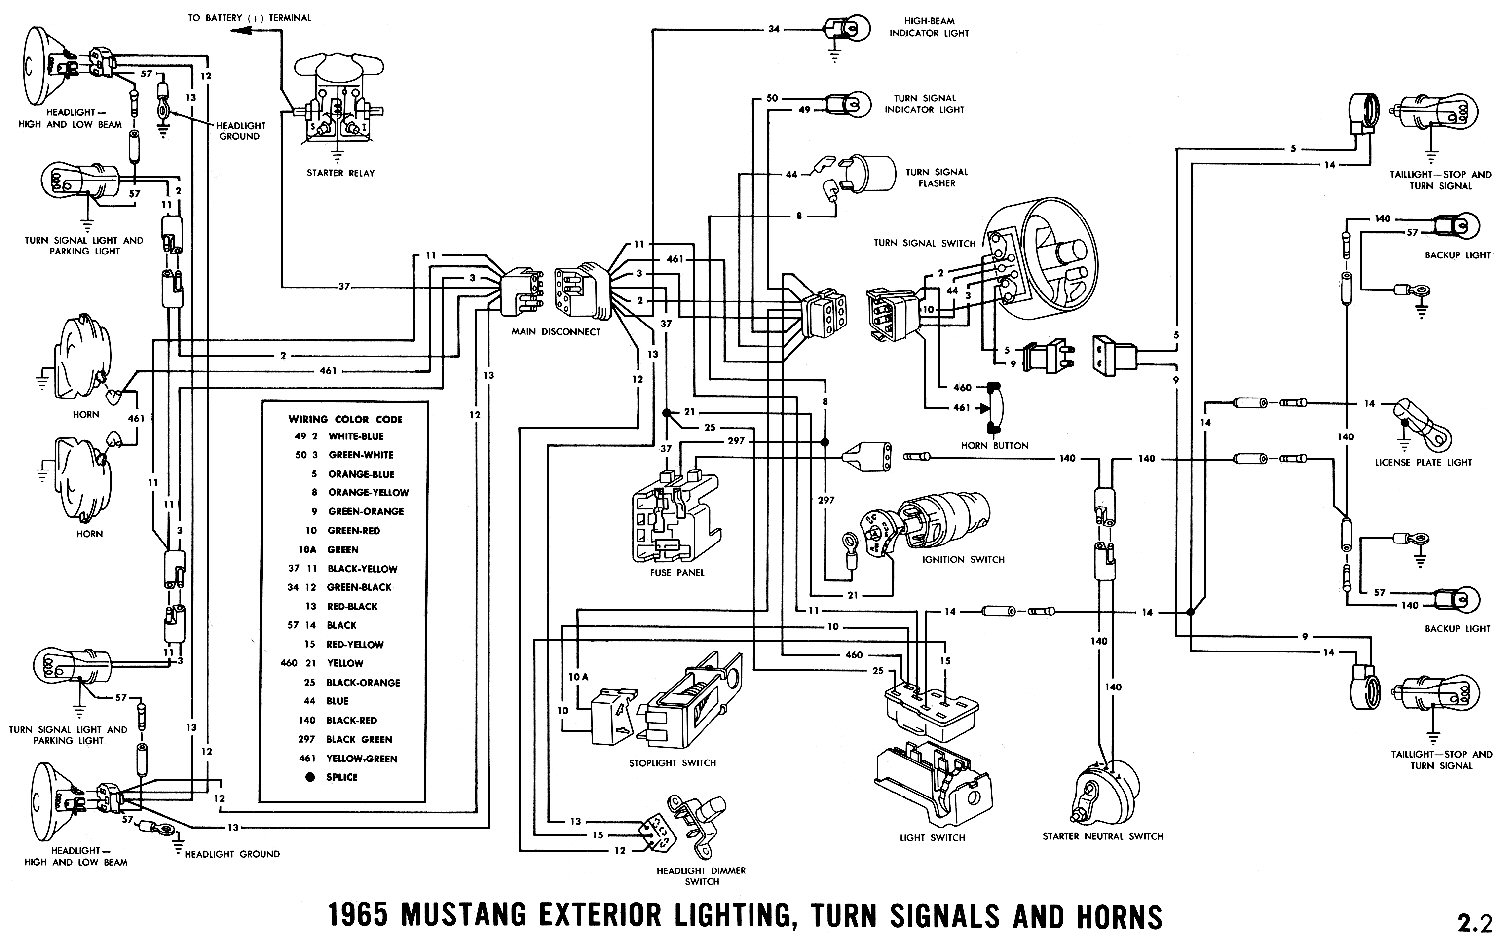 66 mustang ignition wiring diagram samsung headphone 1965 diagrams average joe restoration headlamps